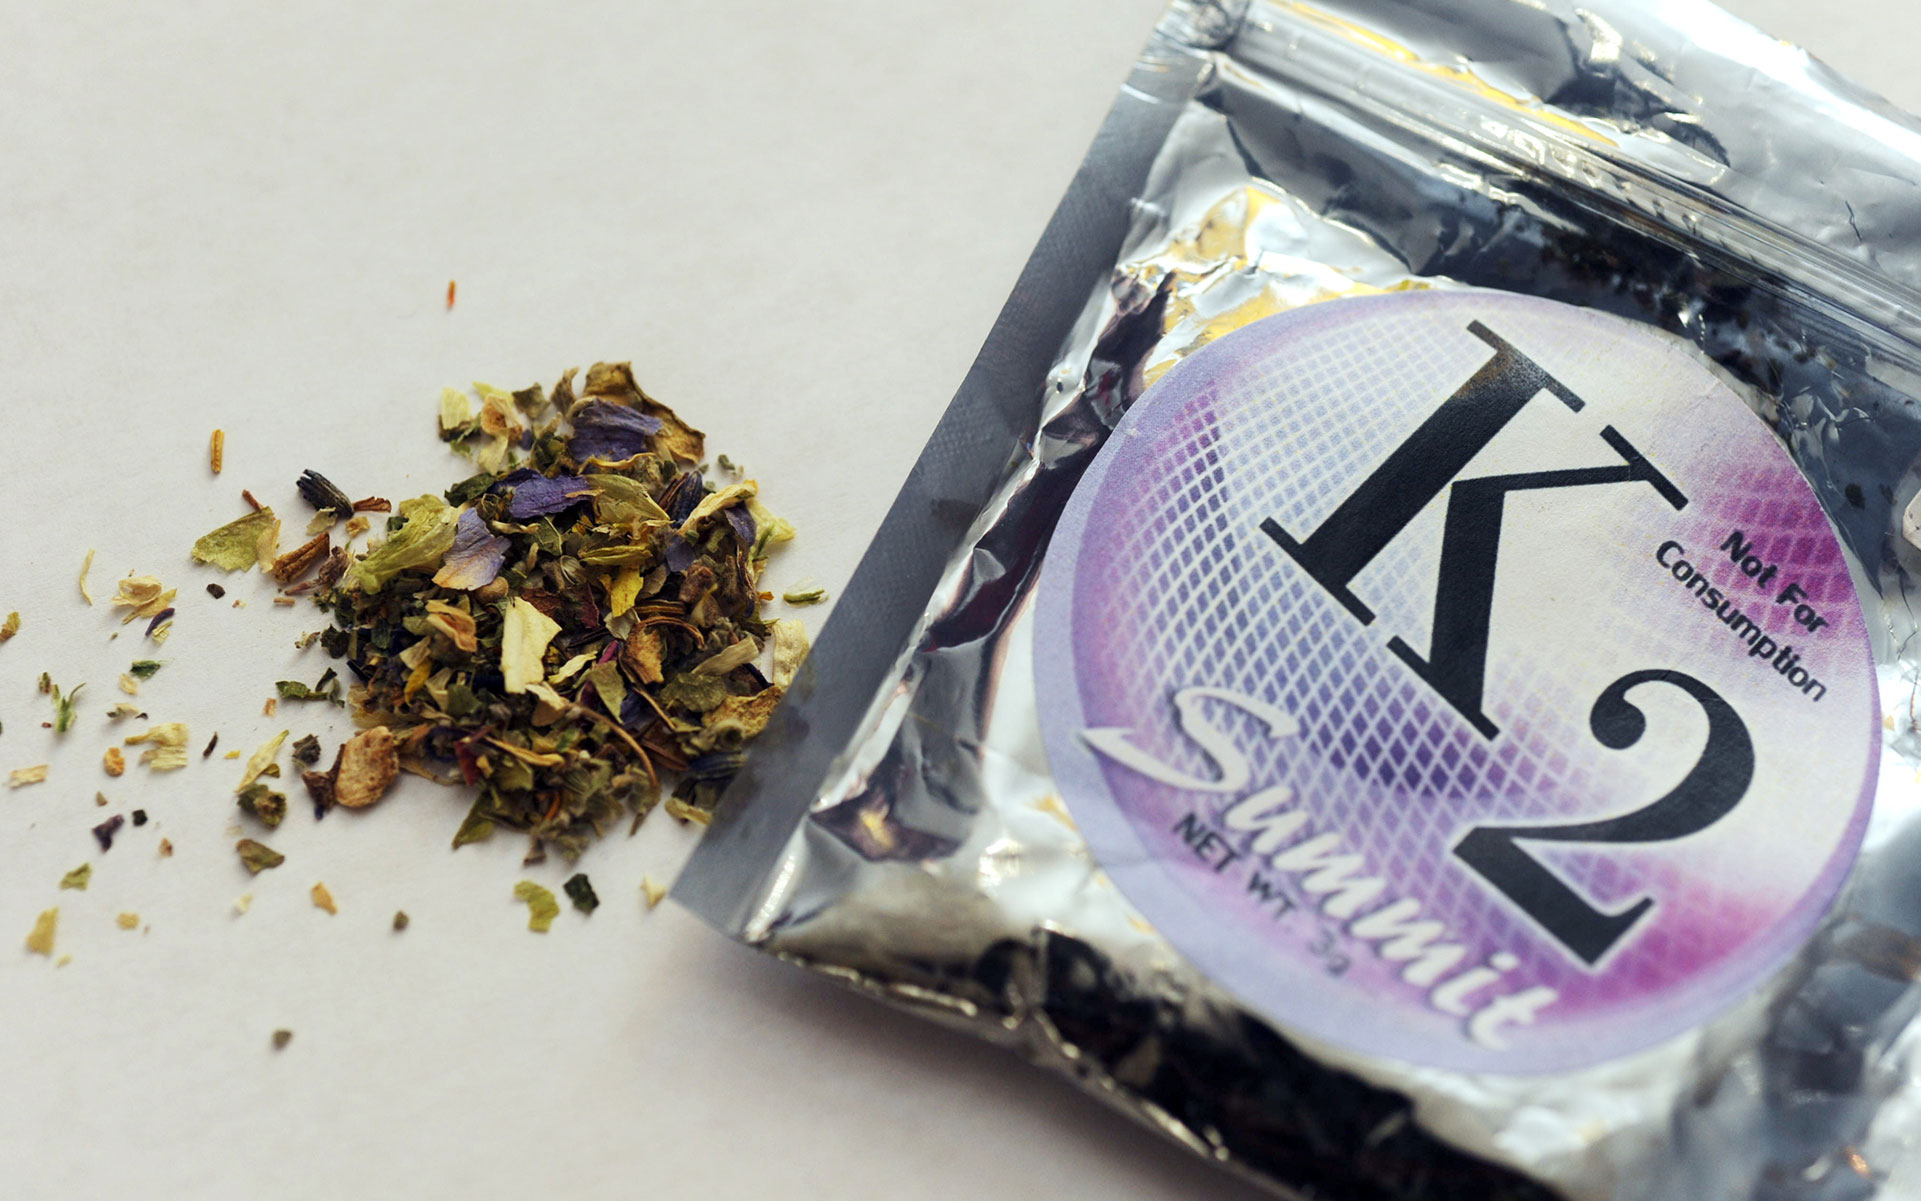 synthetic cannabinoids, synthetic thc, spice, k2